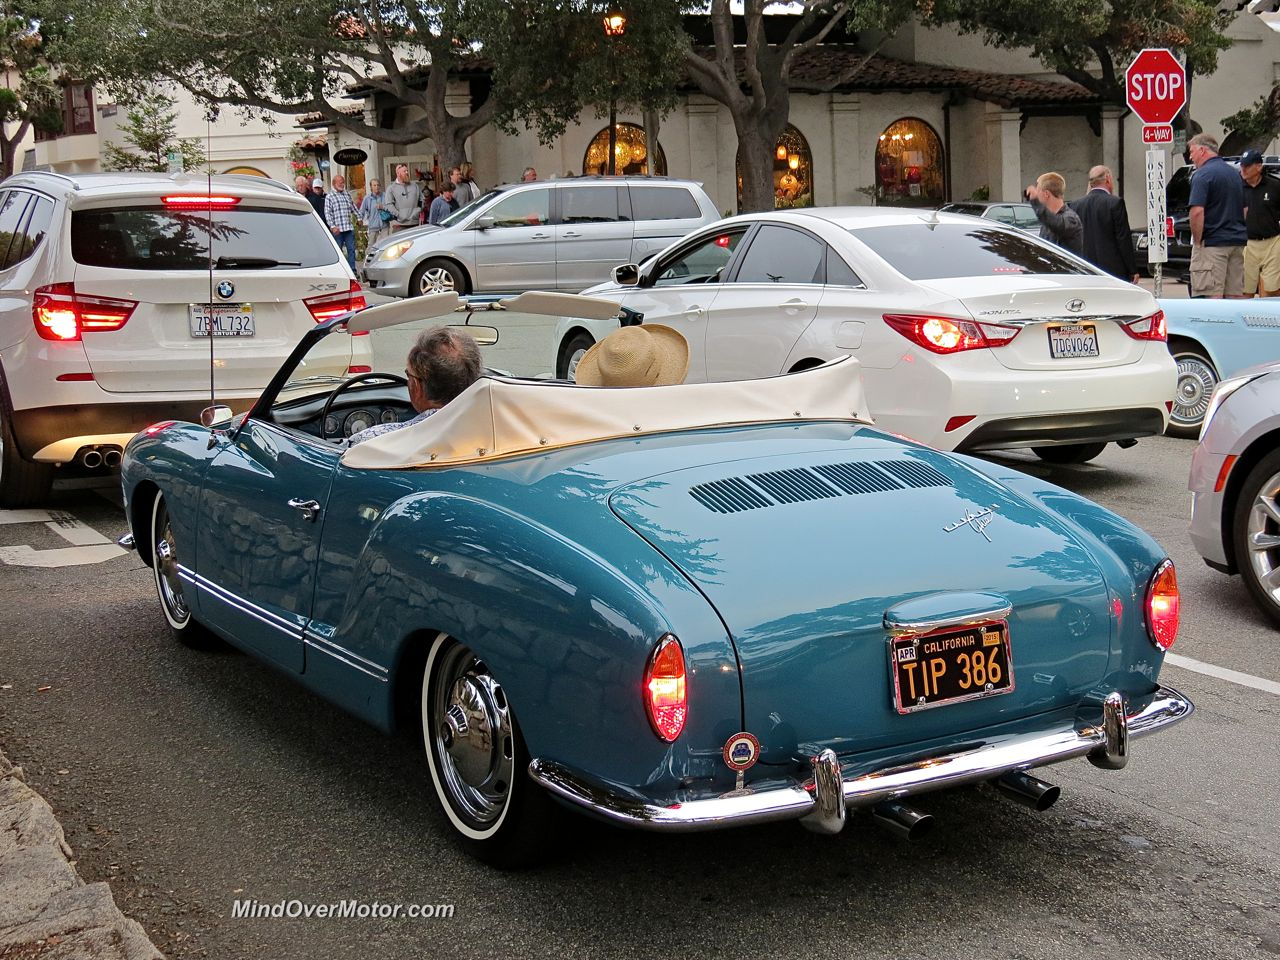 VW Karmann Ghia Convertible Rear